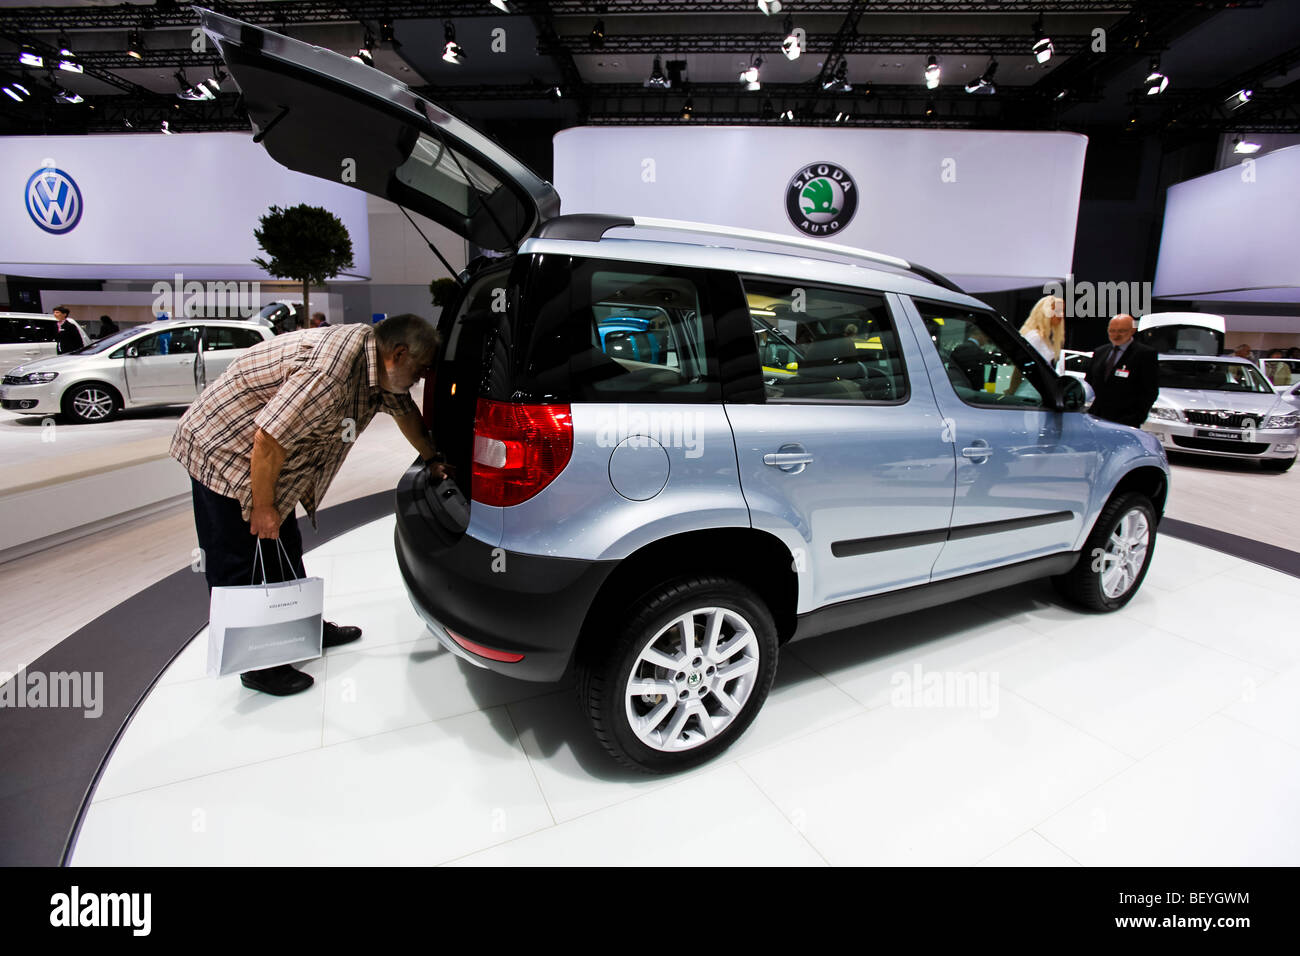 A visitor looks at a Skoda an automobile show of the Volkswagen AG in Hamburg, Germany. - Stock Image